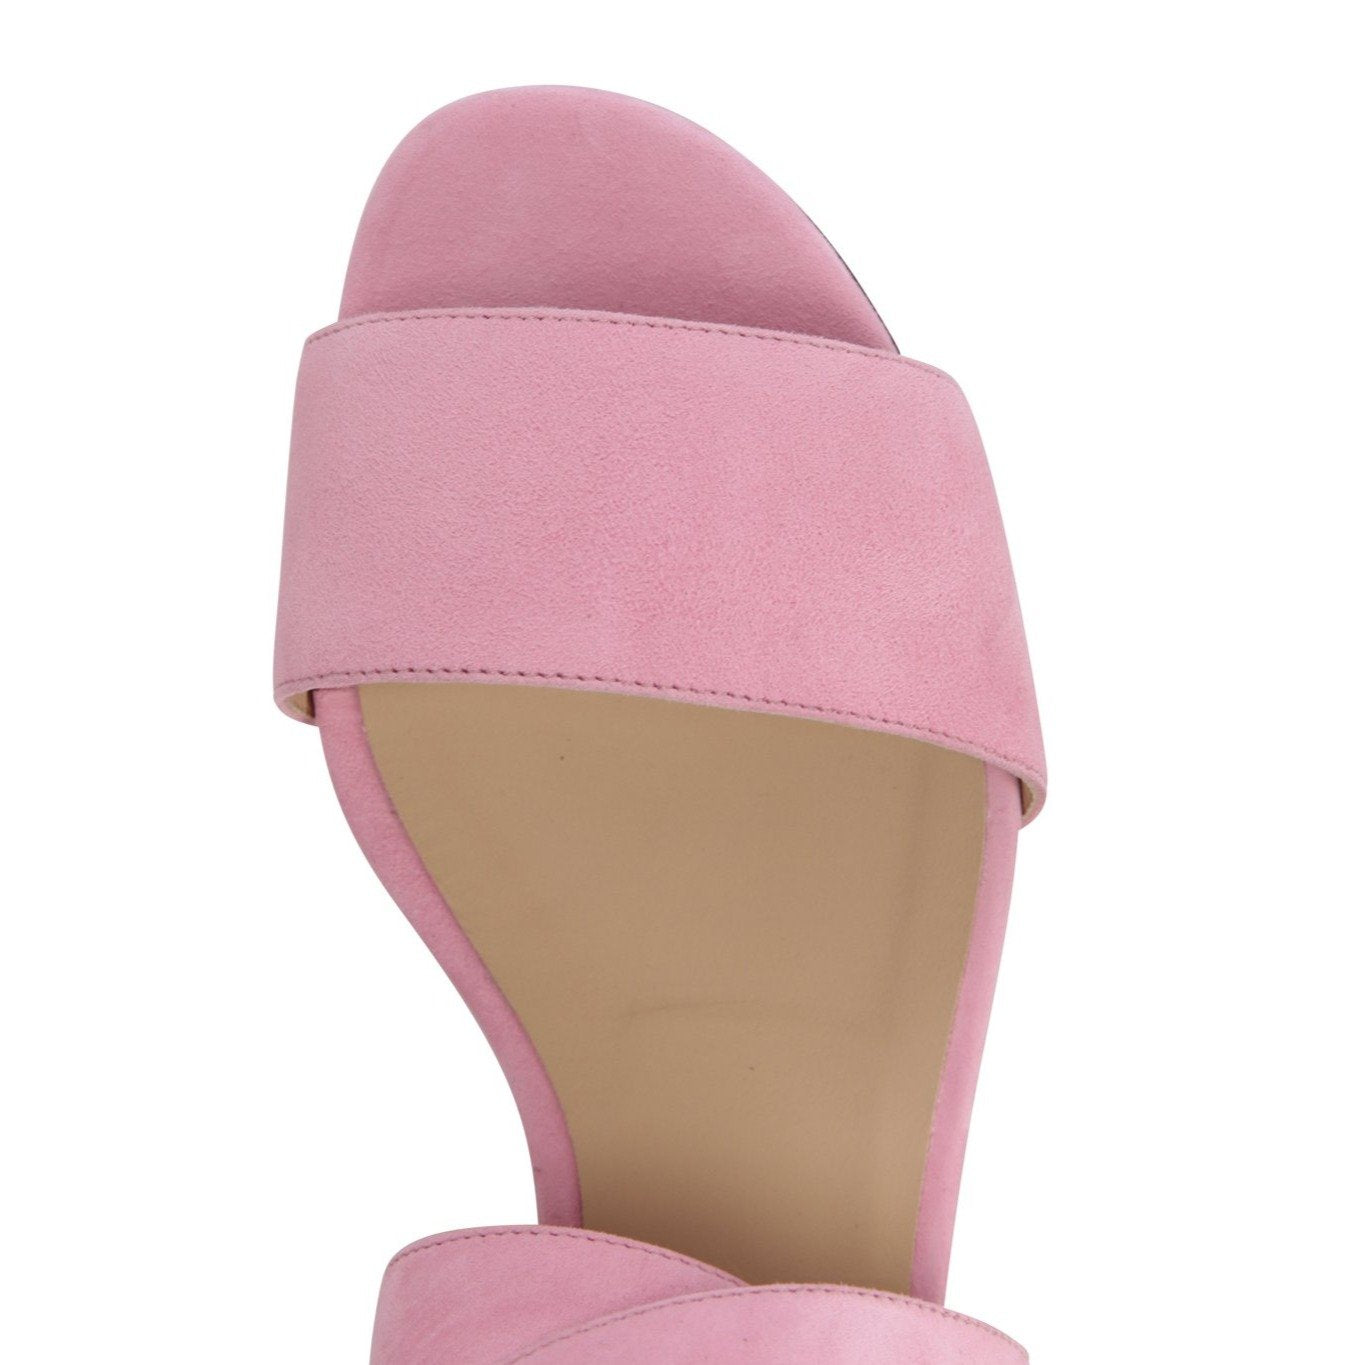 LUCCA - Velukid Principesa Pink, VIAJIYU - Women's Hand Made Sustainable Luxury Shoes. Made in Italy. Made to Order.